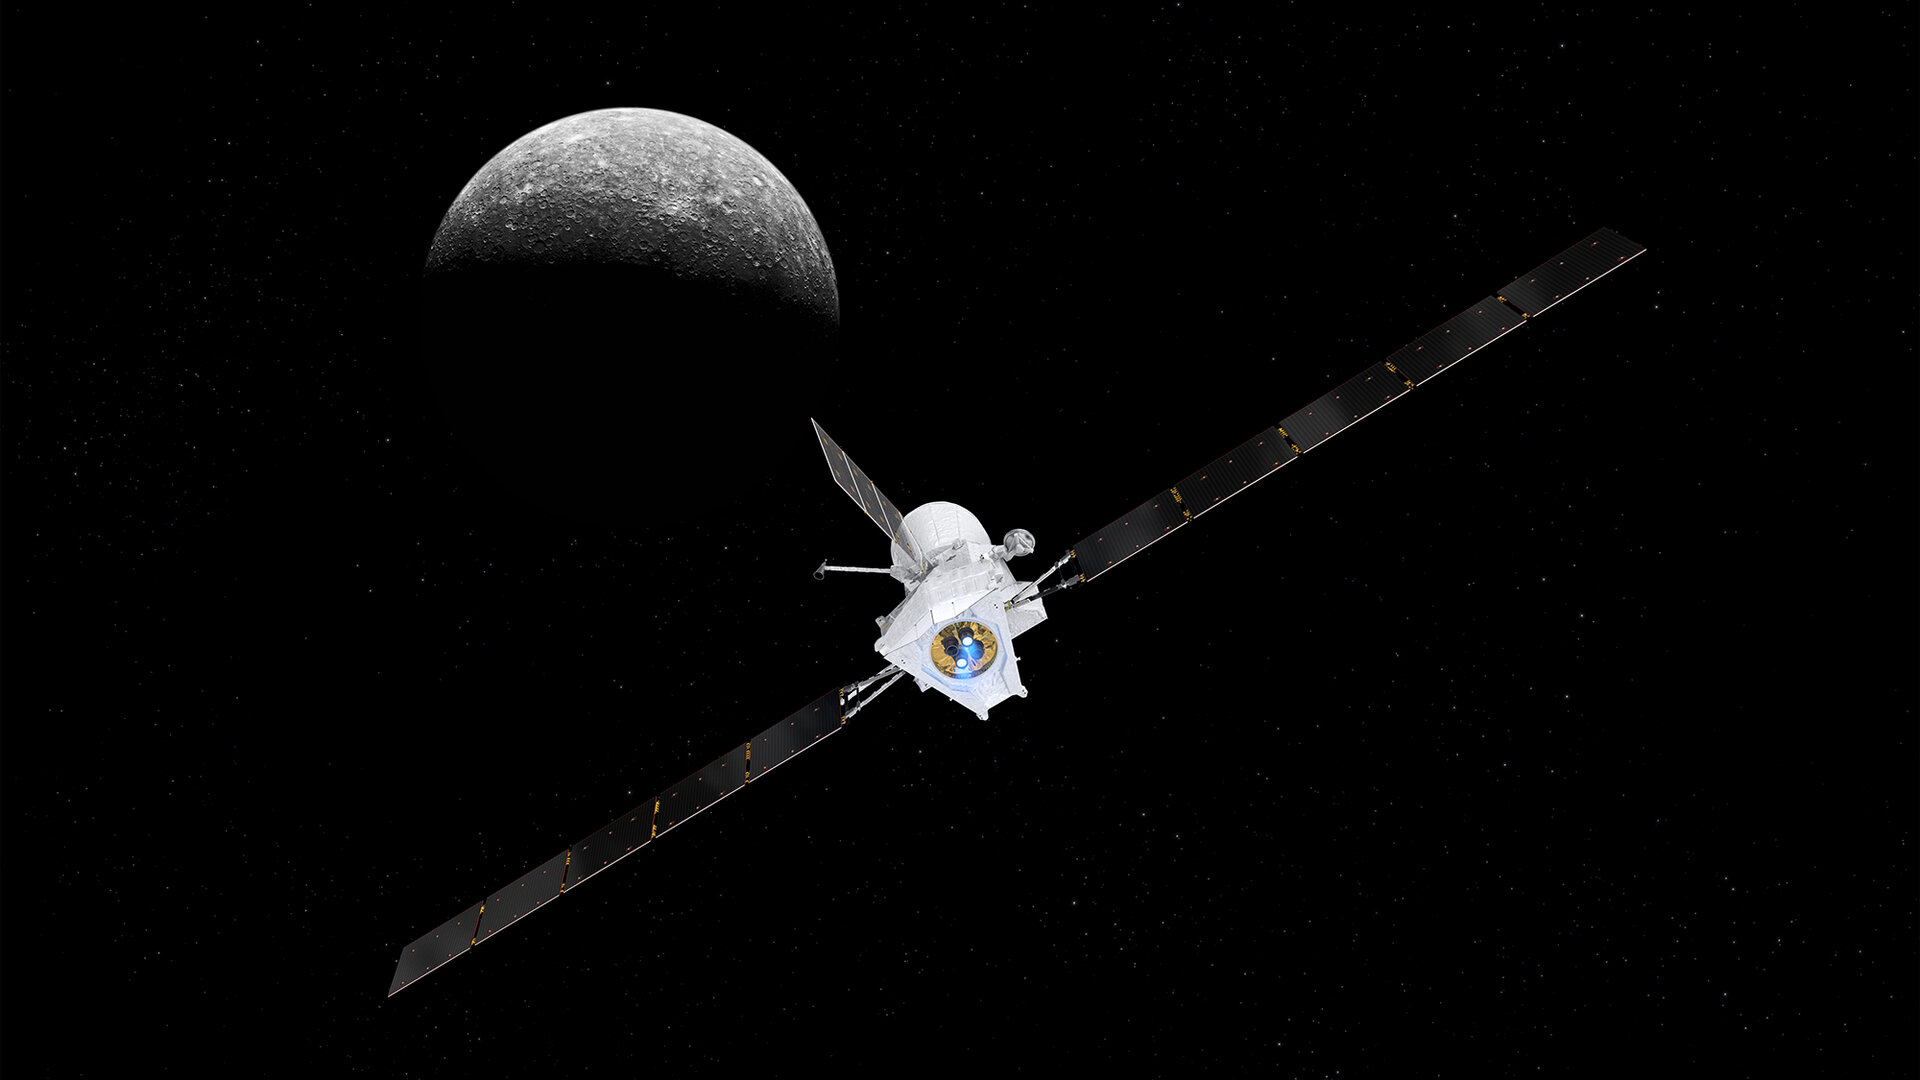 It takes seven years and nine gravity-assist manoeuvres for the BepiColombo mission to reach its destination